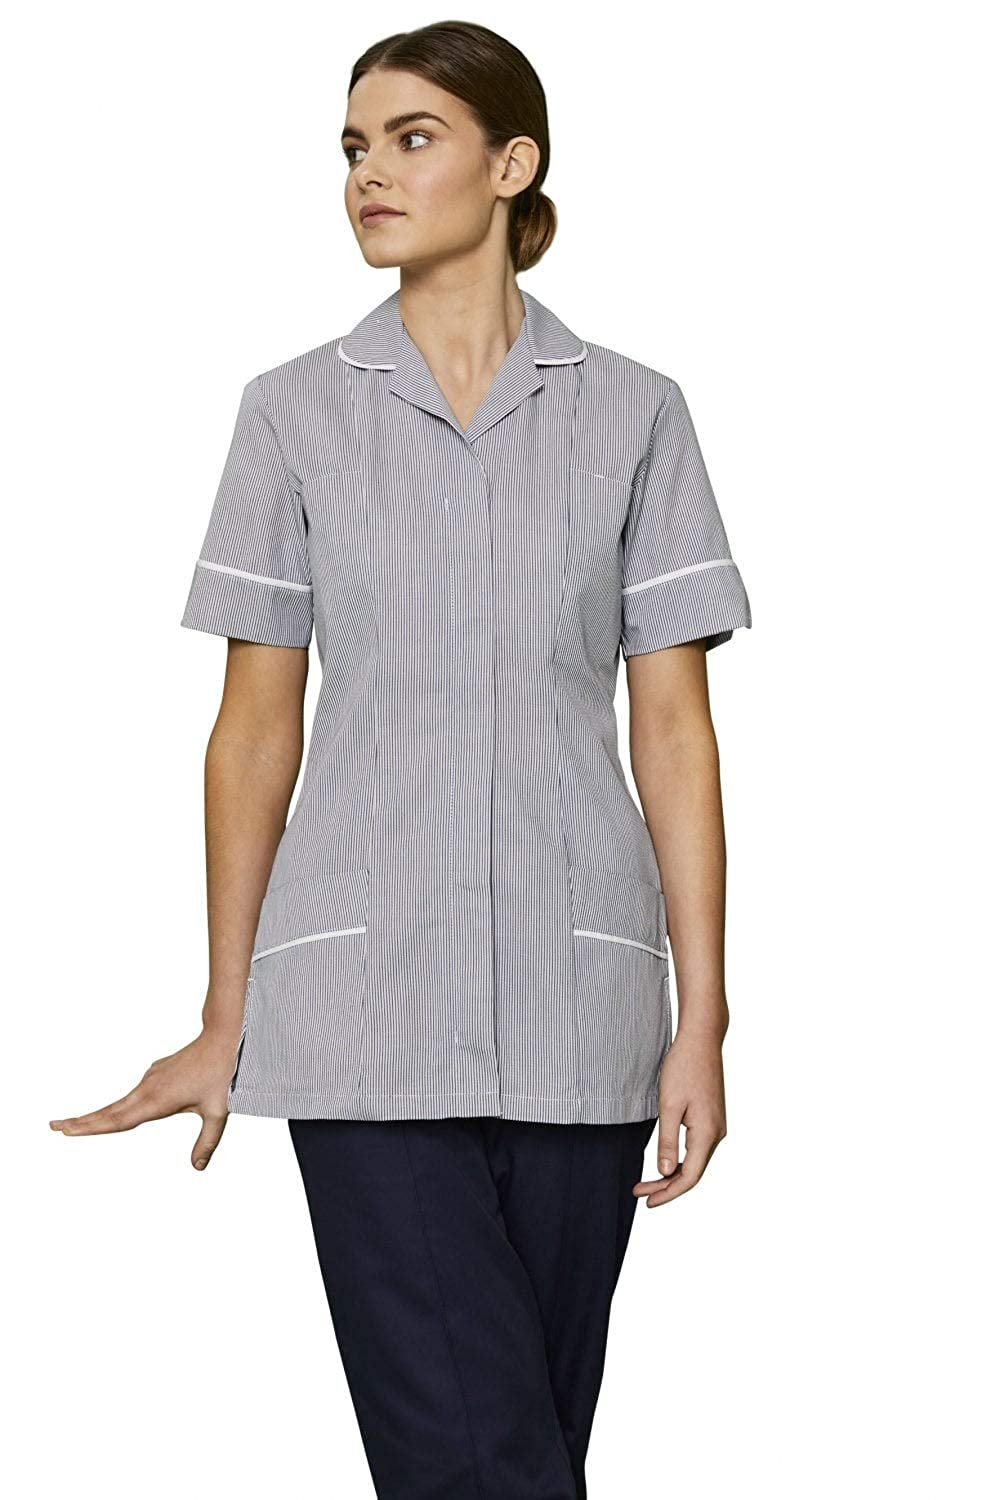 Striped Simon Jersey Womens Classic Collar Healthcare Tunic with Various Trim Collars